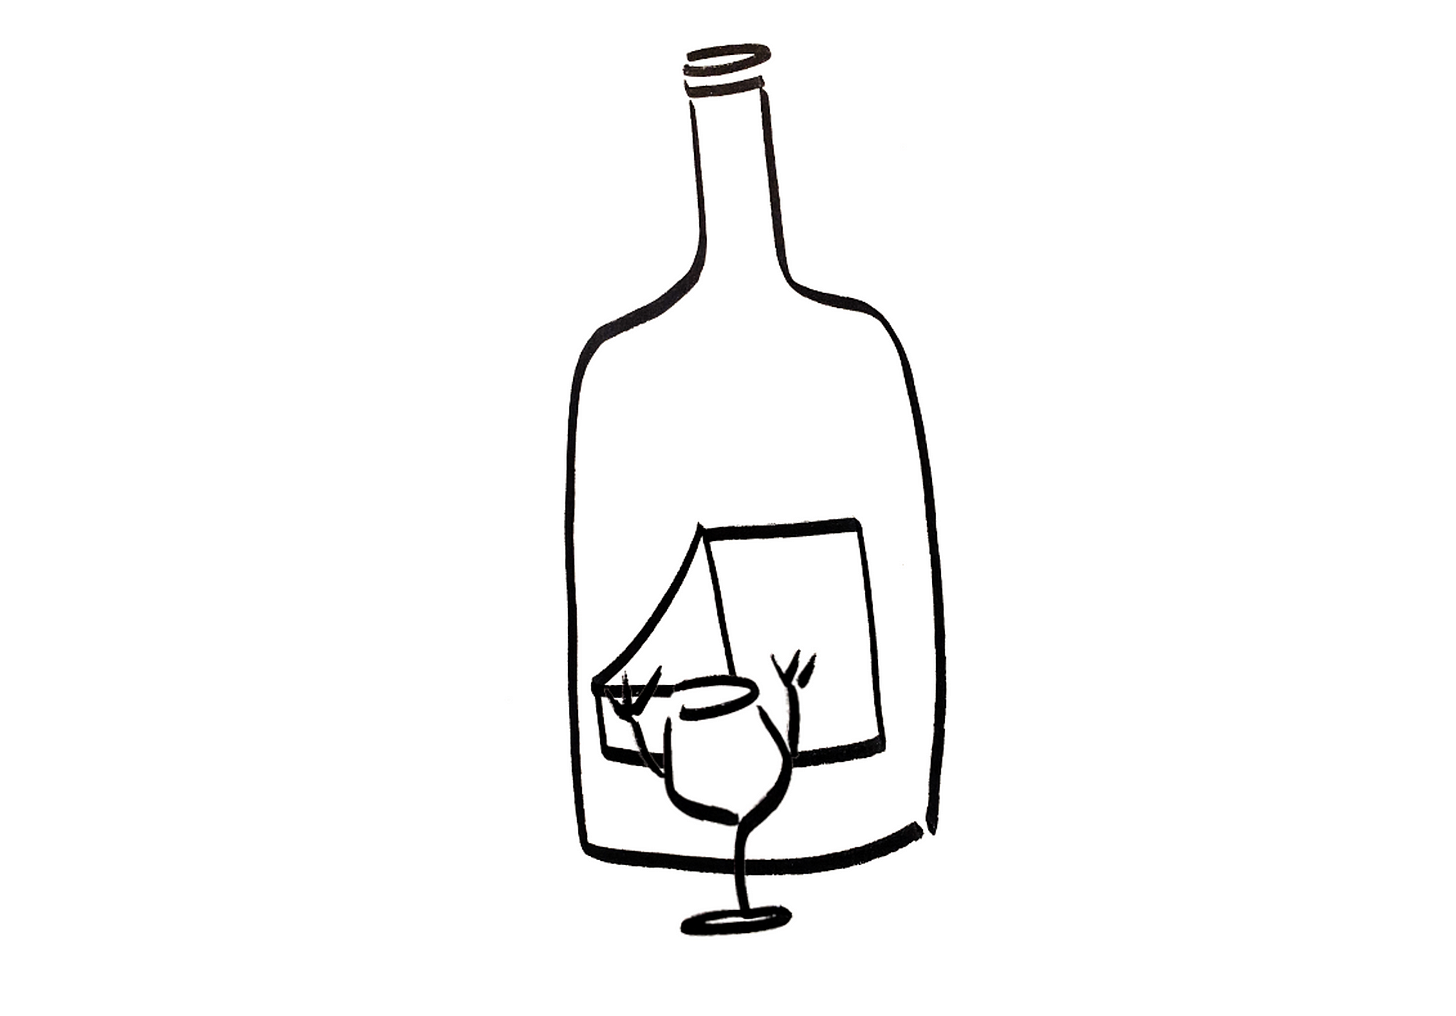 An anthropomorphic wine glass adjusting the label on a wine bottle